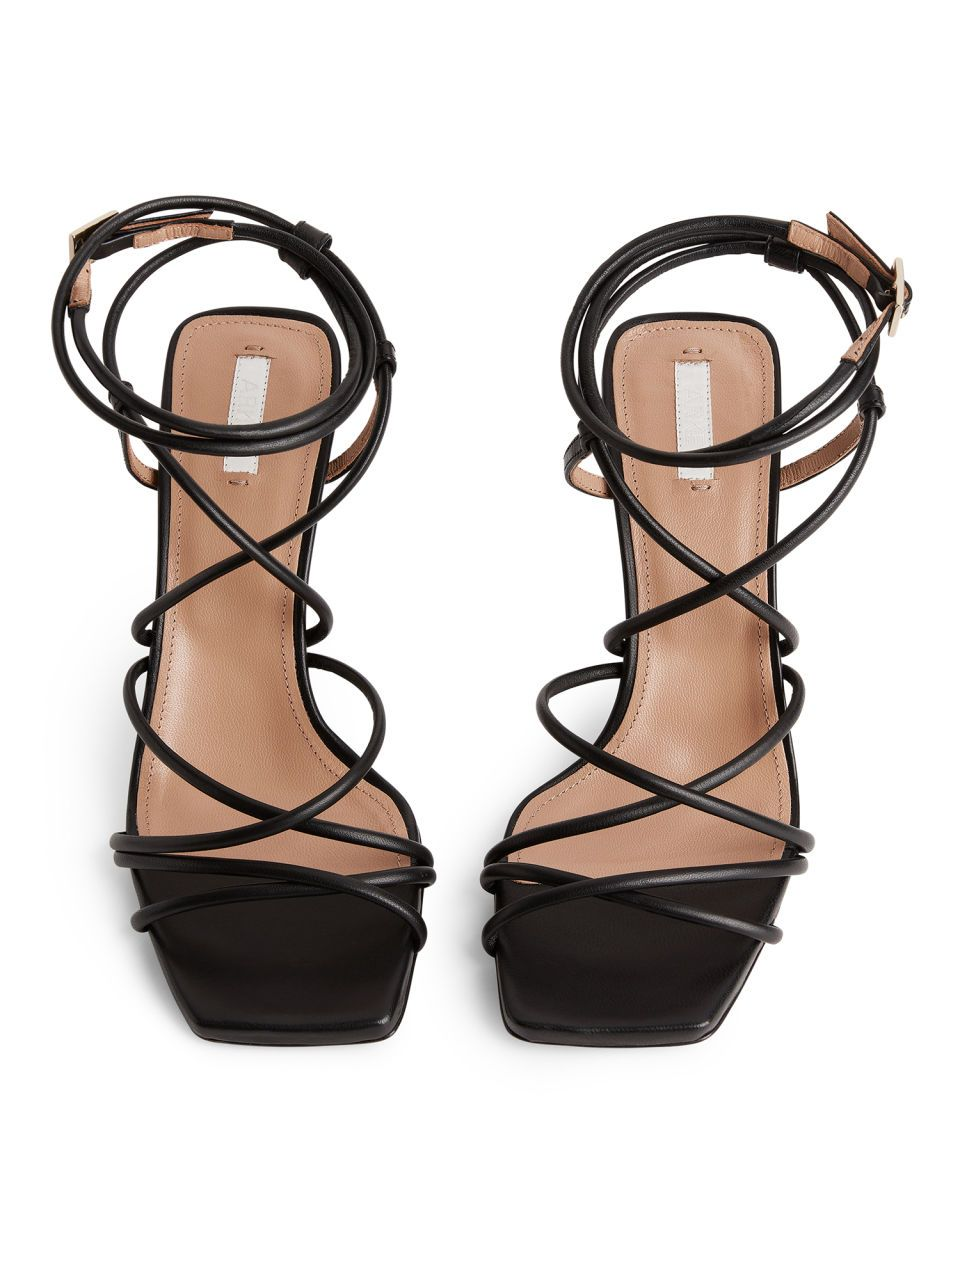 da6fa6c8511 High-Heel Leather Strap Sandal - Black - Shoes in 2019 | 200 ...